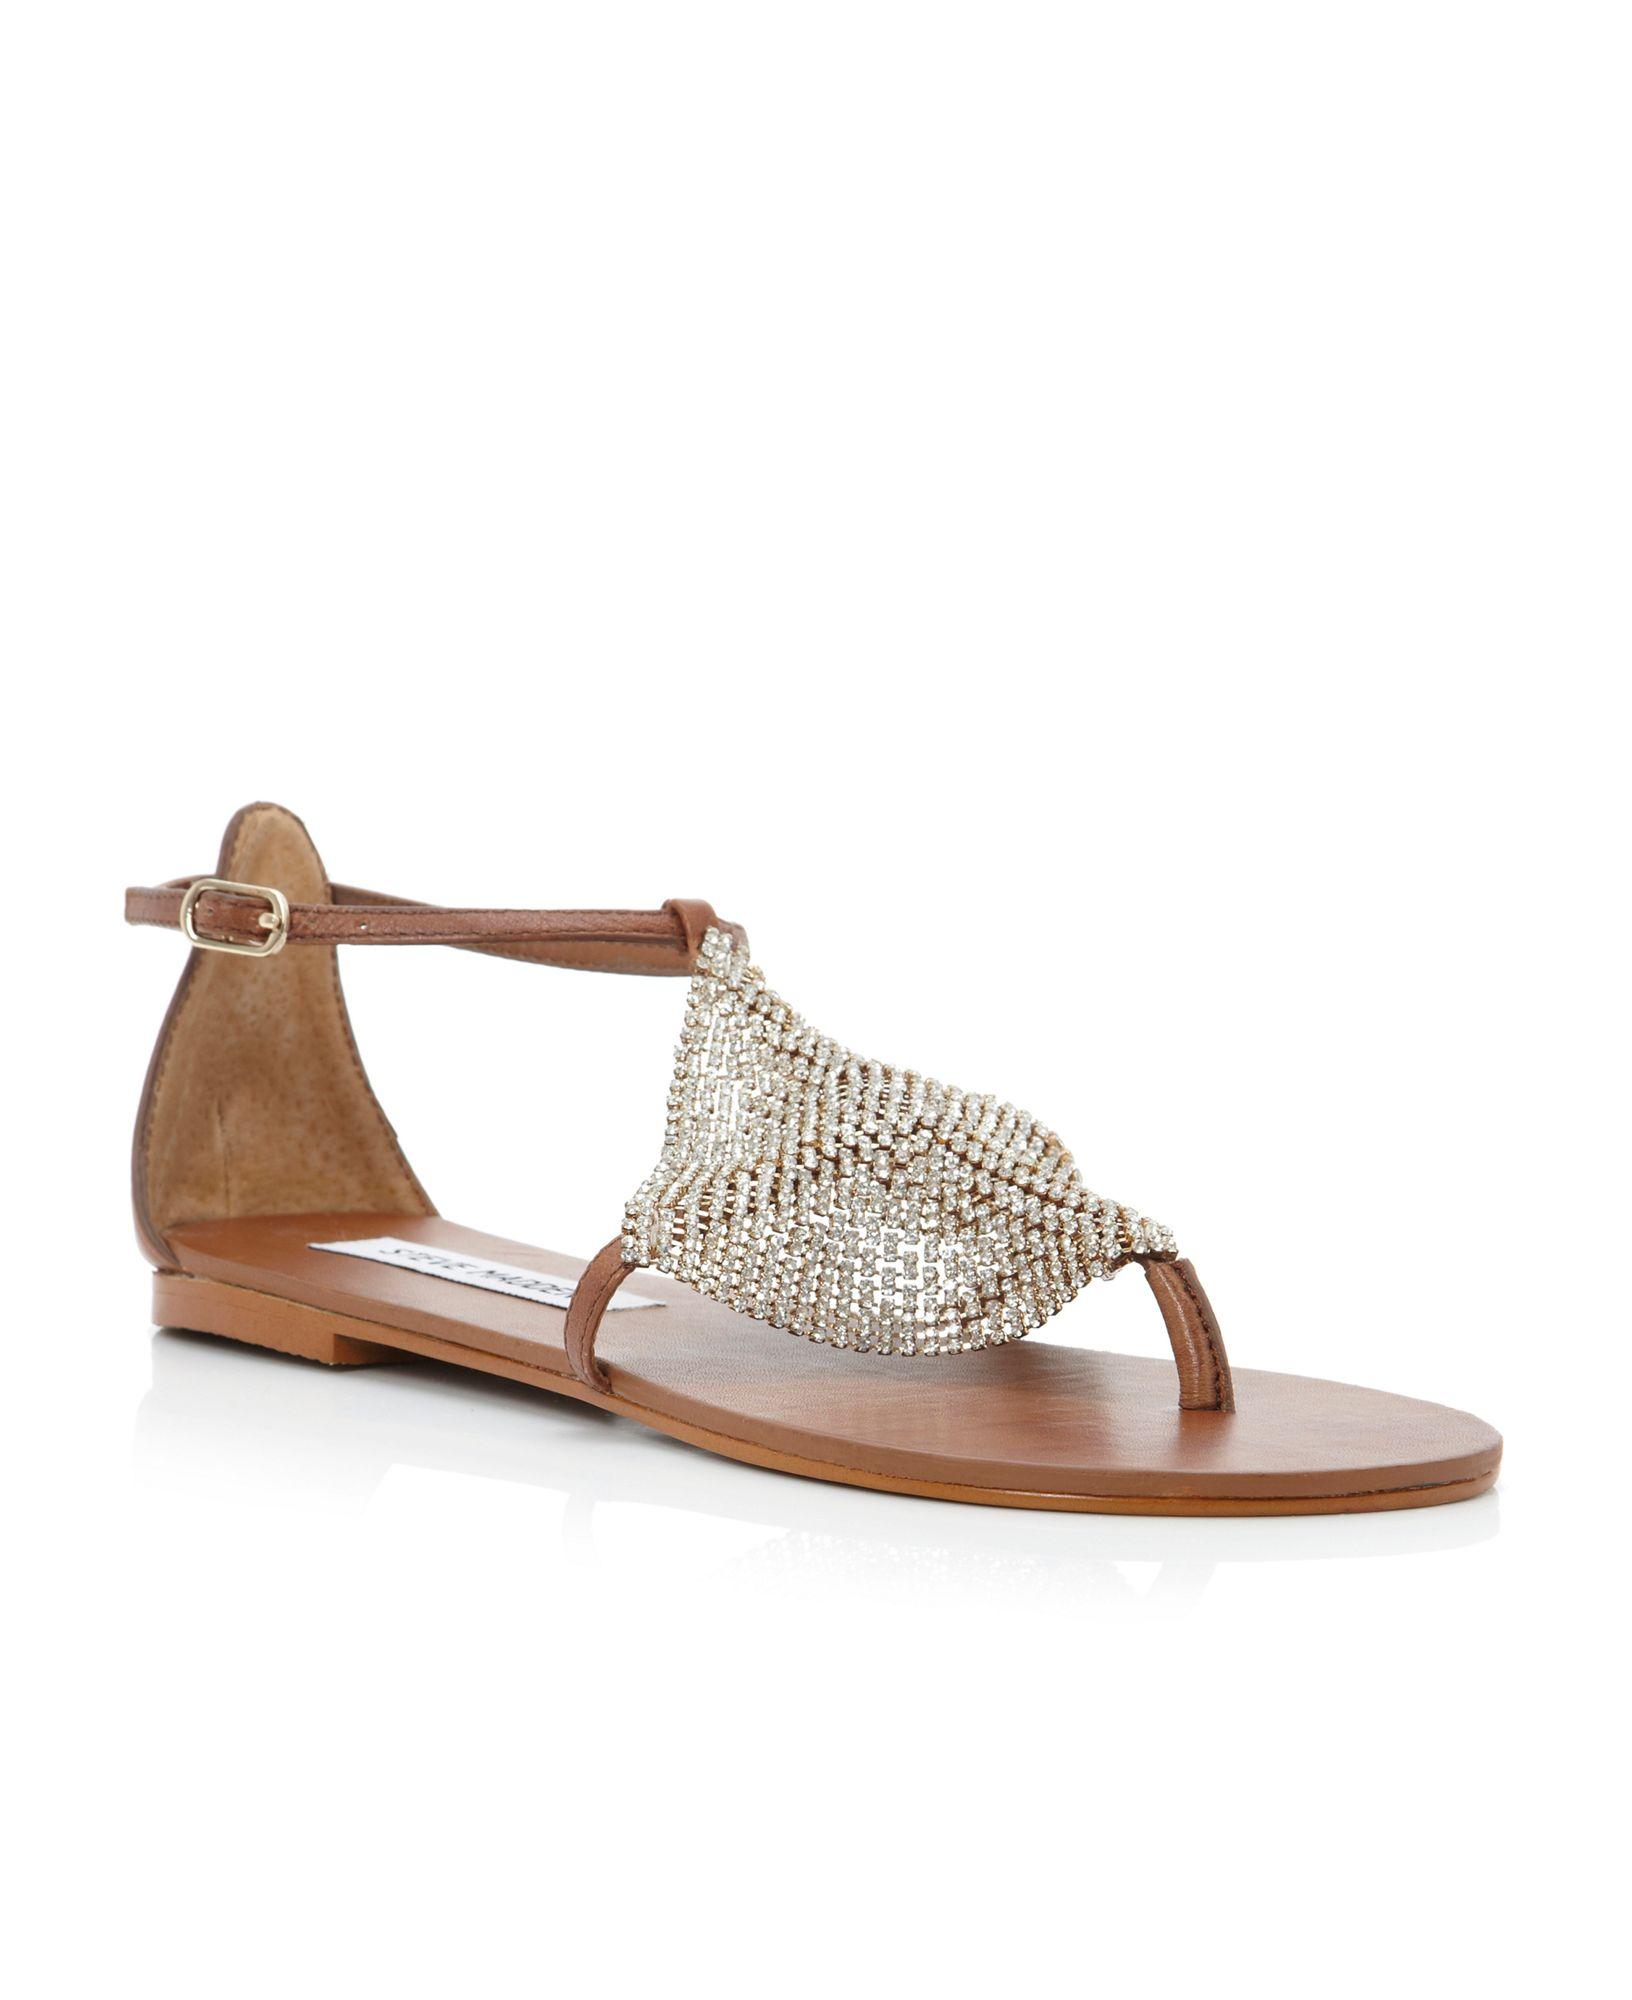 steve madden shineyy diamante toe flat sandals in